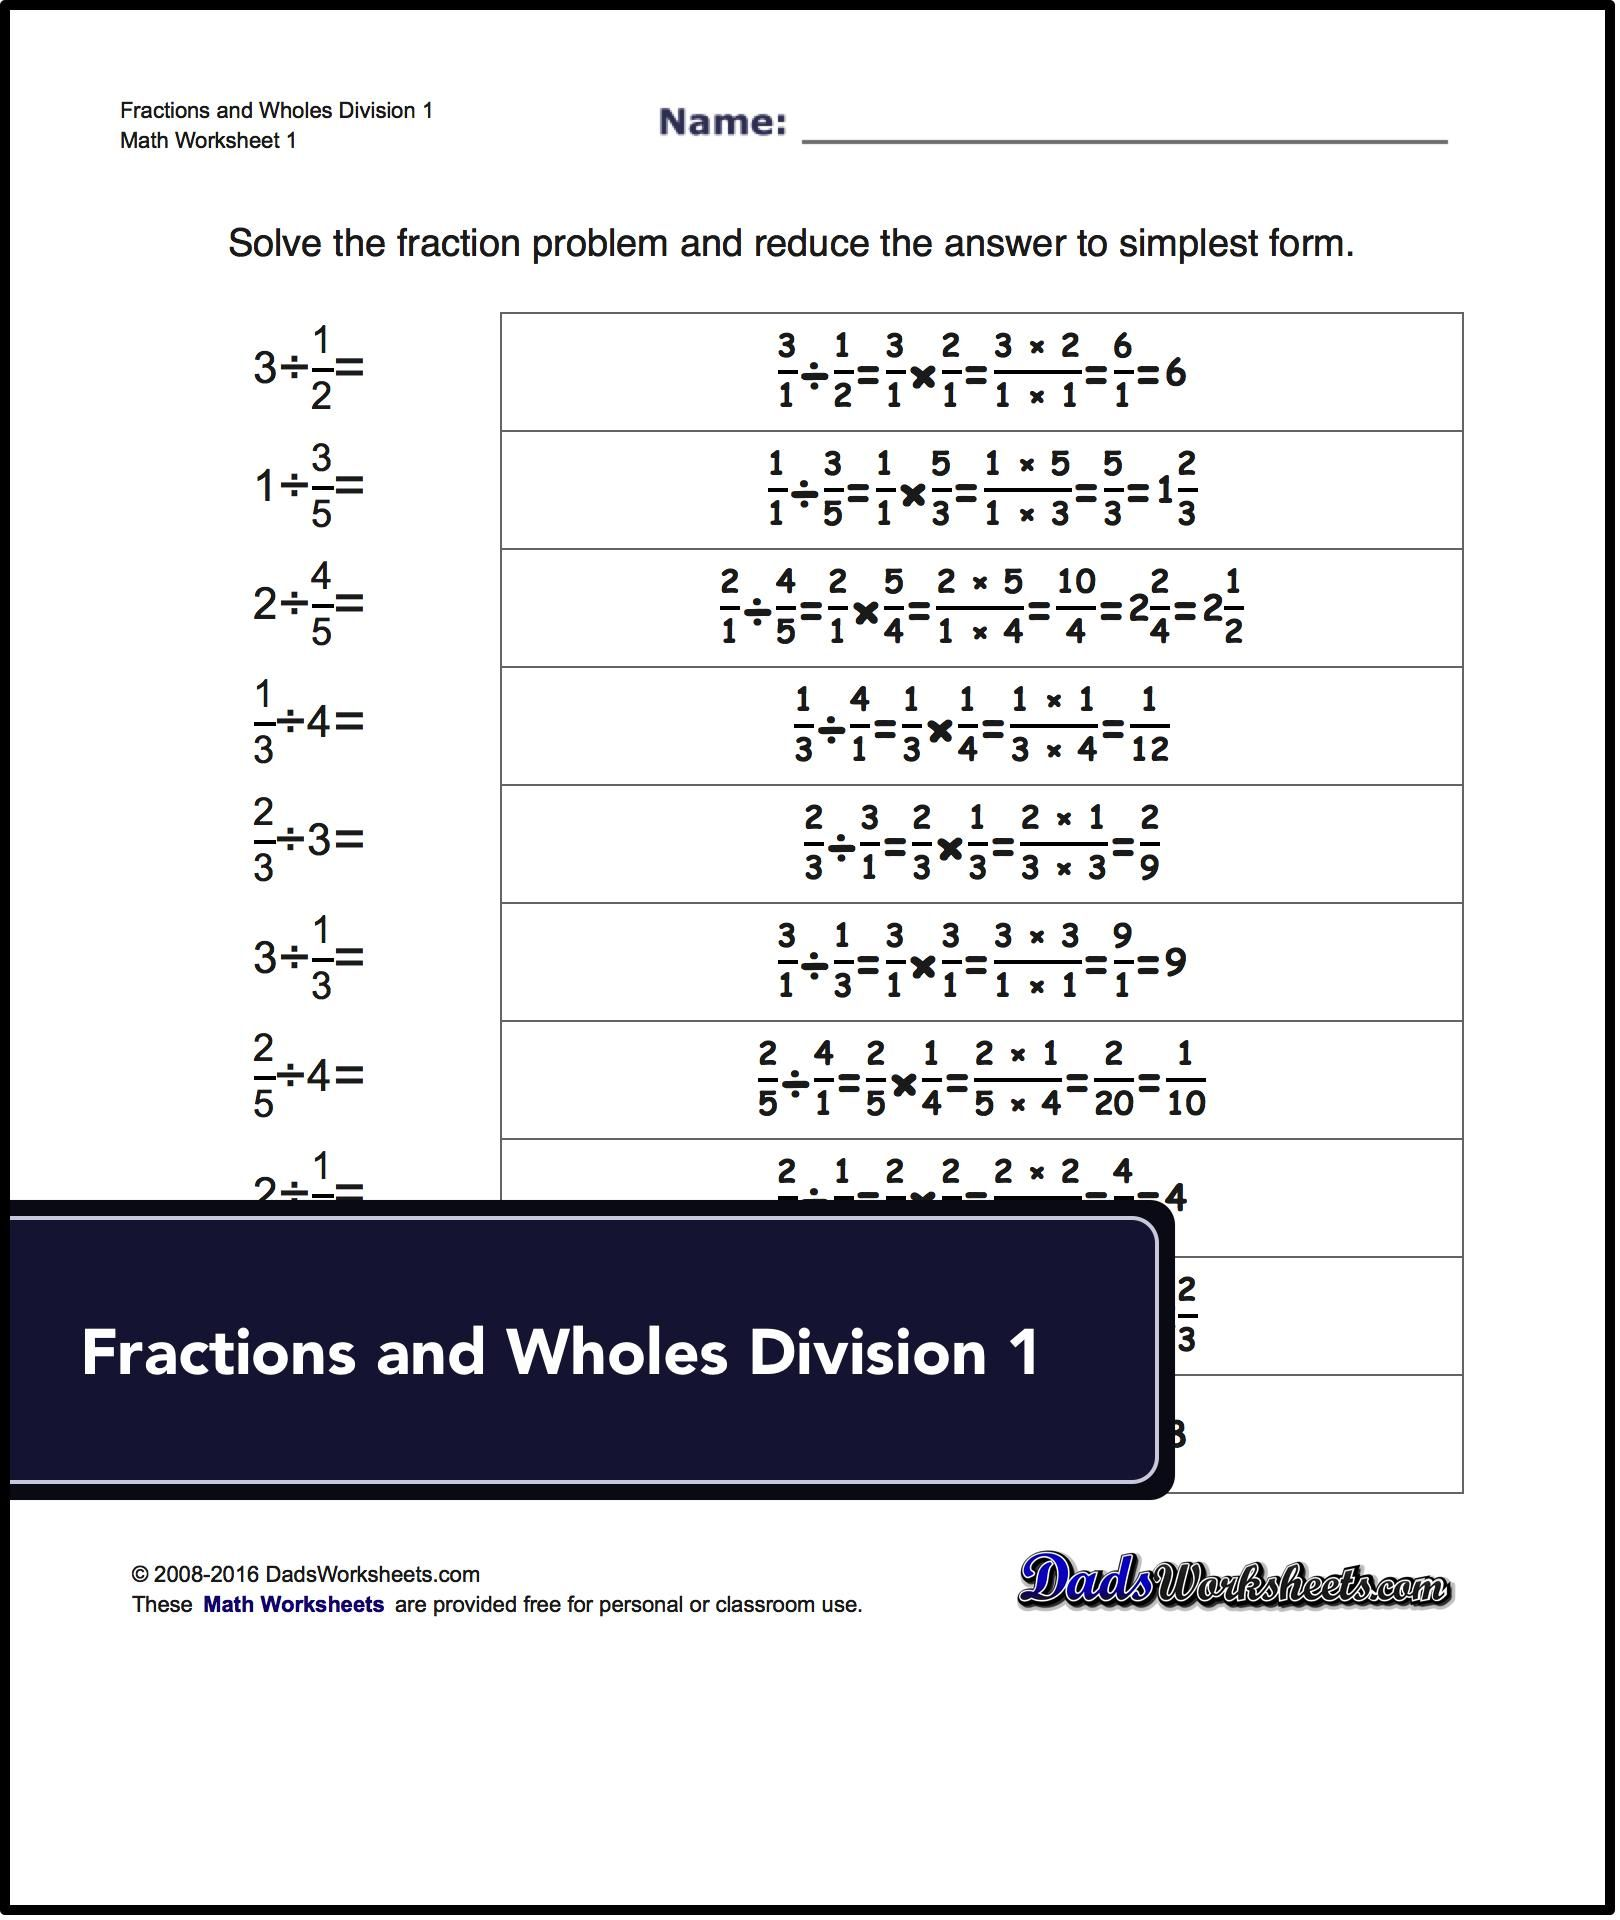 worksheet Multiplying Fractions By Whole Numbers Worksheet basic fraction division worksheets including dividing fractions with whole numbers and a by